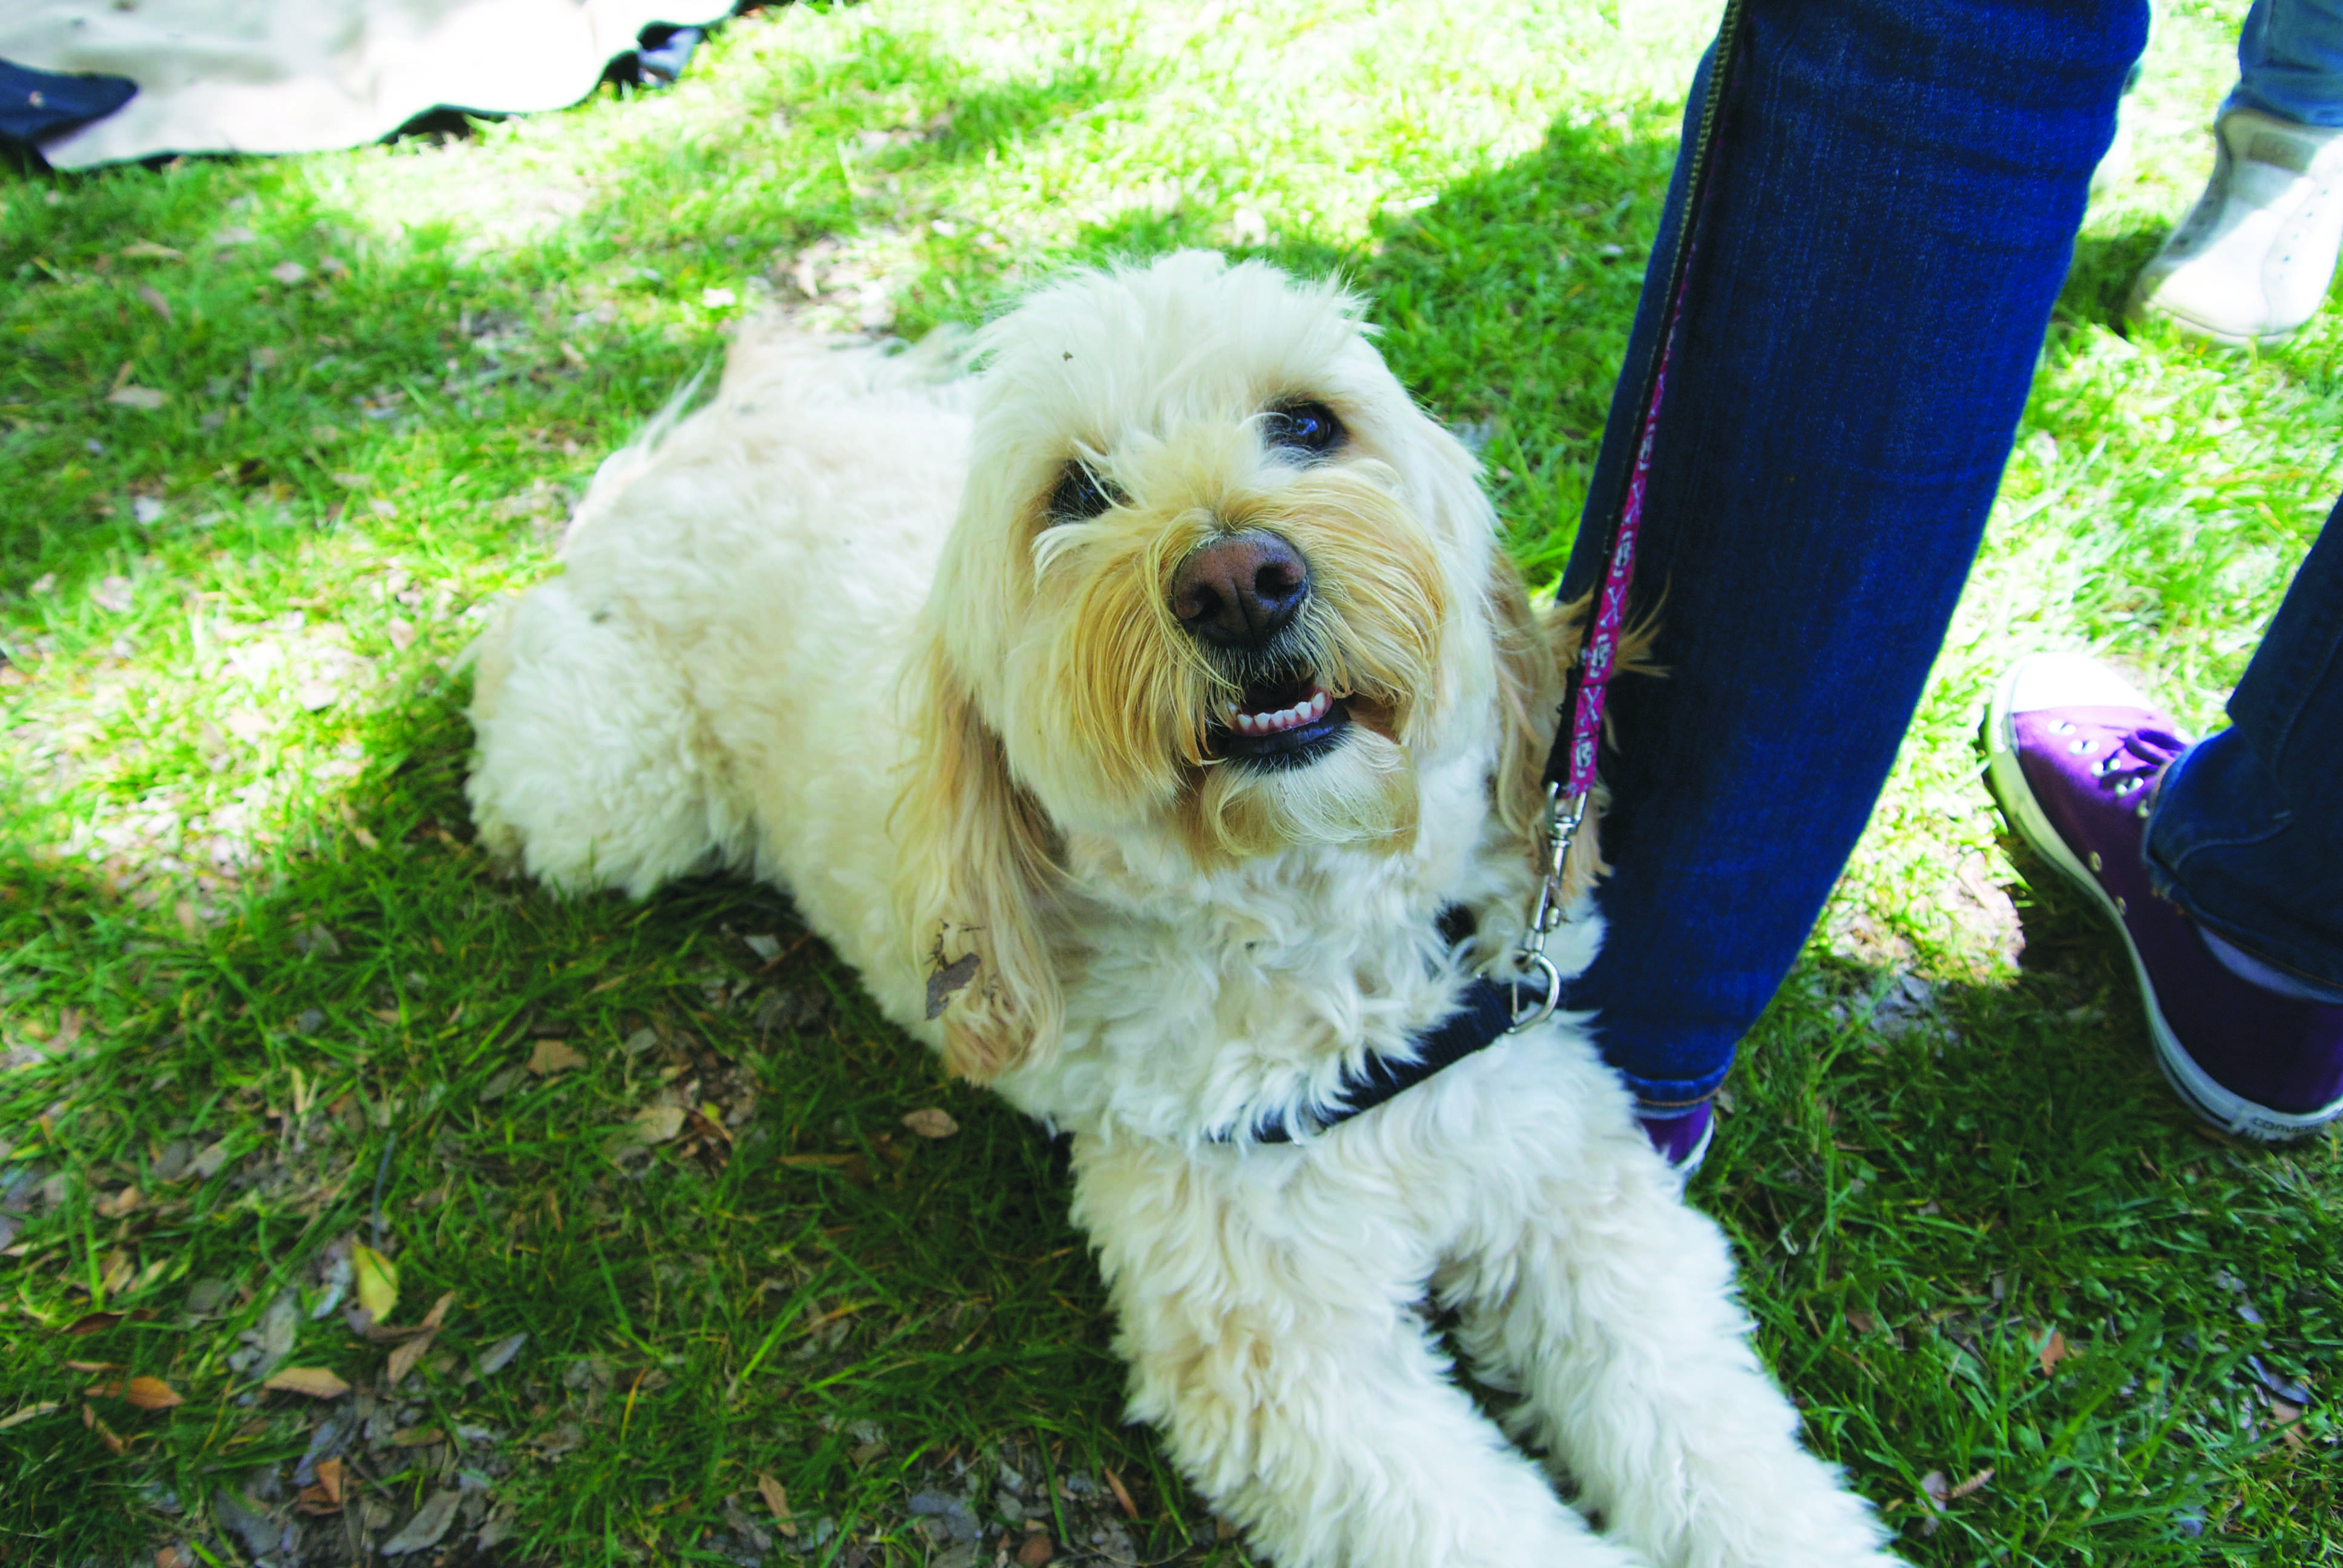 Kaia, a certified Canine Good Citizen dog visiting Paly.